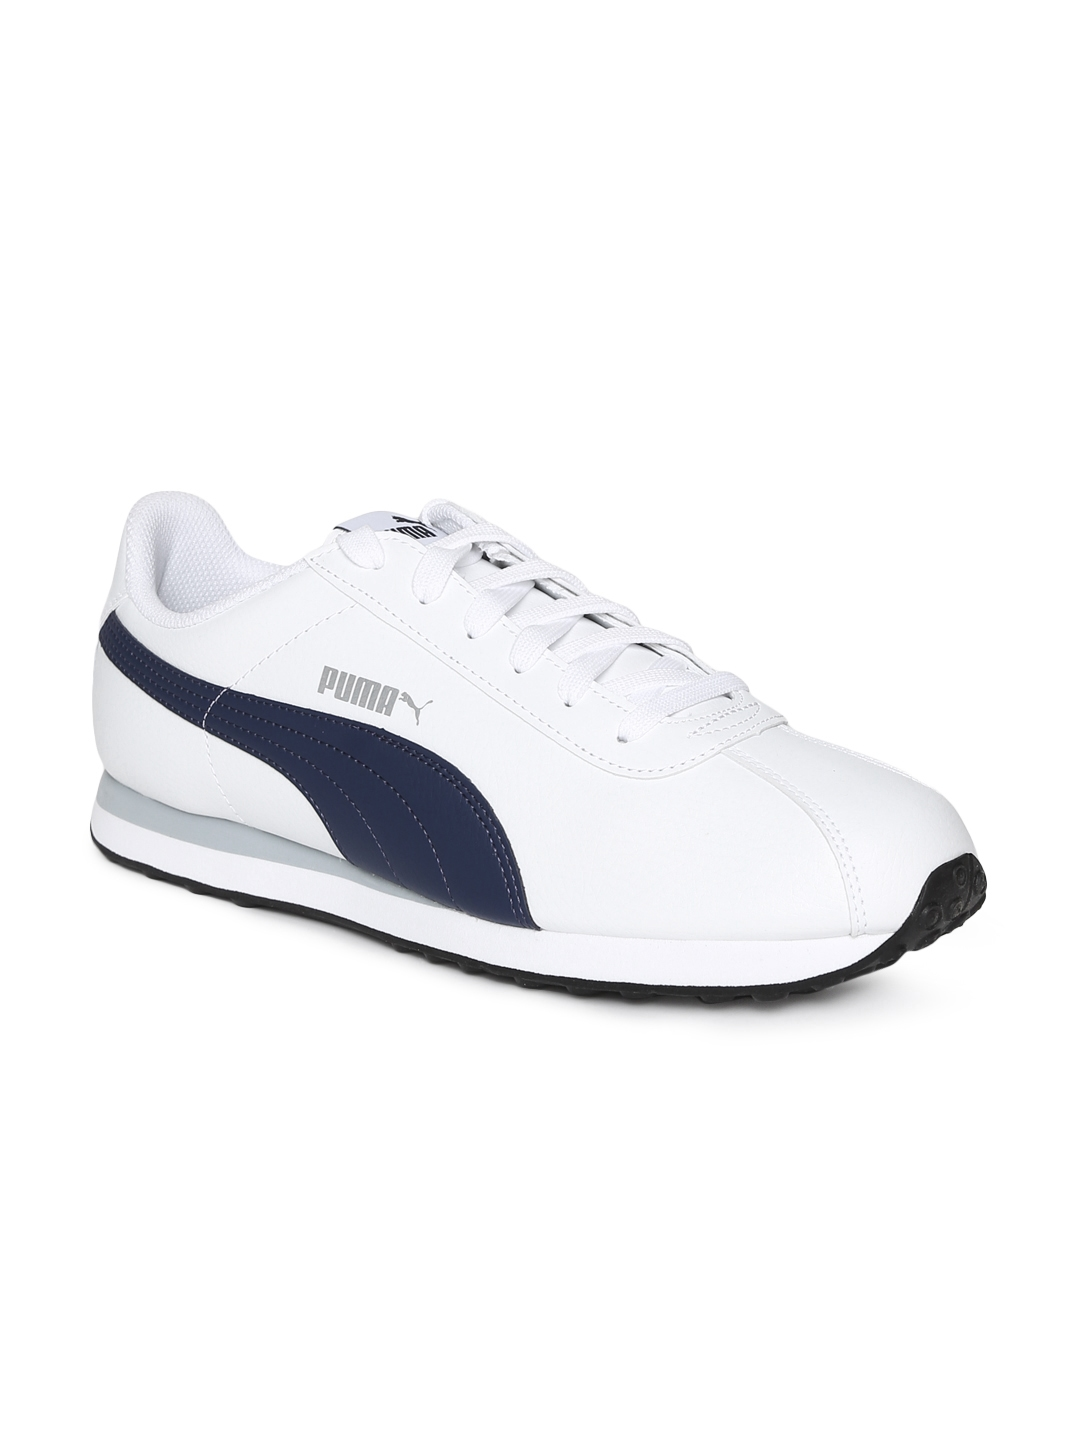 c96872fc8736f7 Buy Puma Men White Turin Sneakers - Casual Shoes for Men 6697413 ...